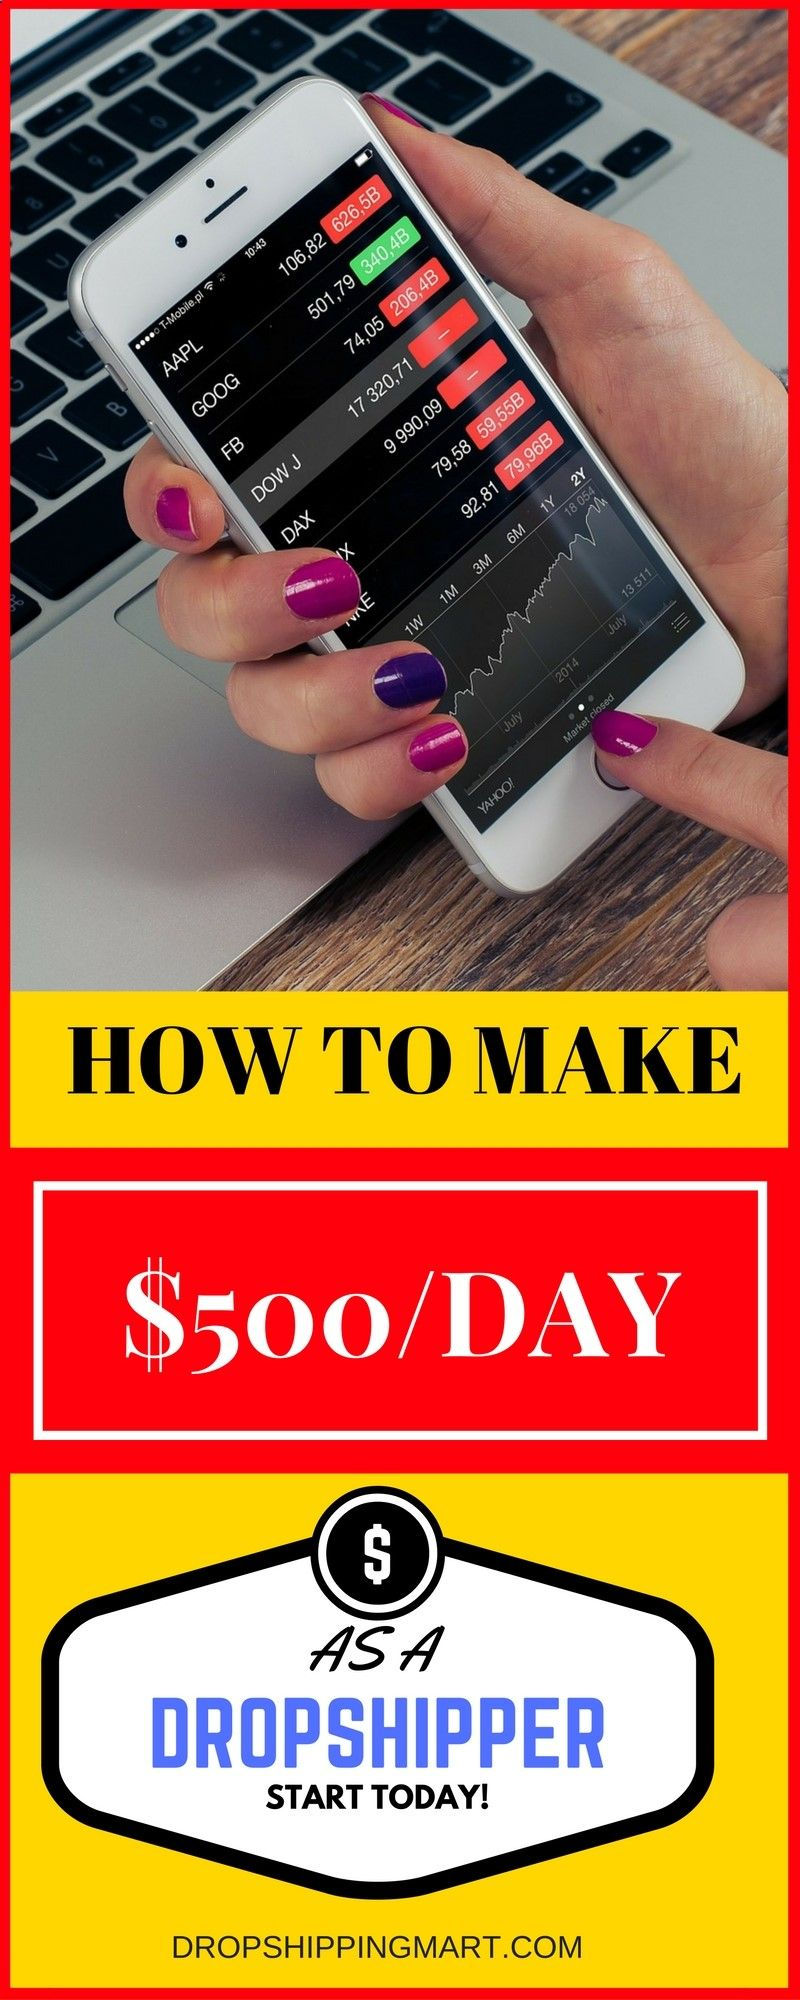 Copy Paste Earn Money - How to make money working from home? Looking for work from home jobs? Online jobs are a great way to earn money without leaving your home. With dropshipping business as a home-based side hustles you can start now. - You're copy pasting anyway...Get paid for it.